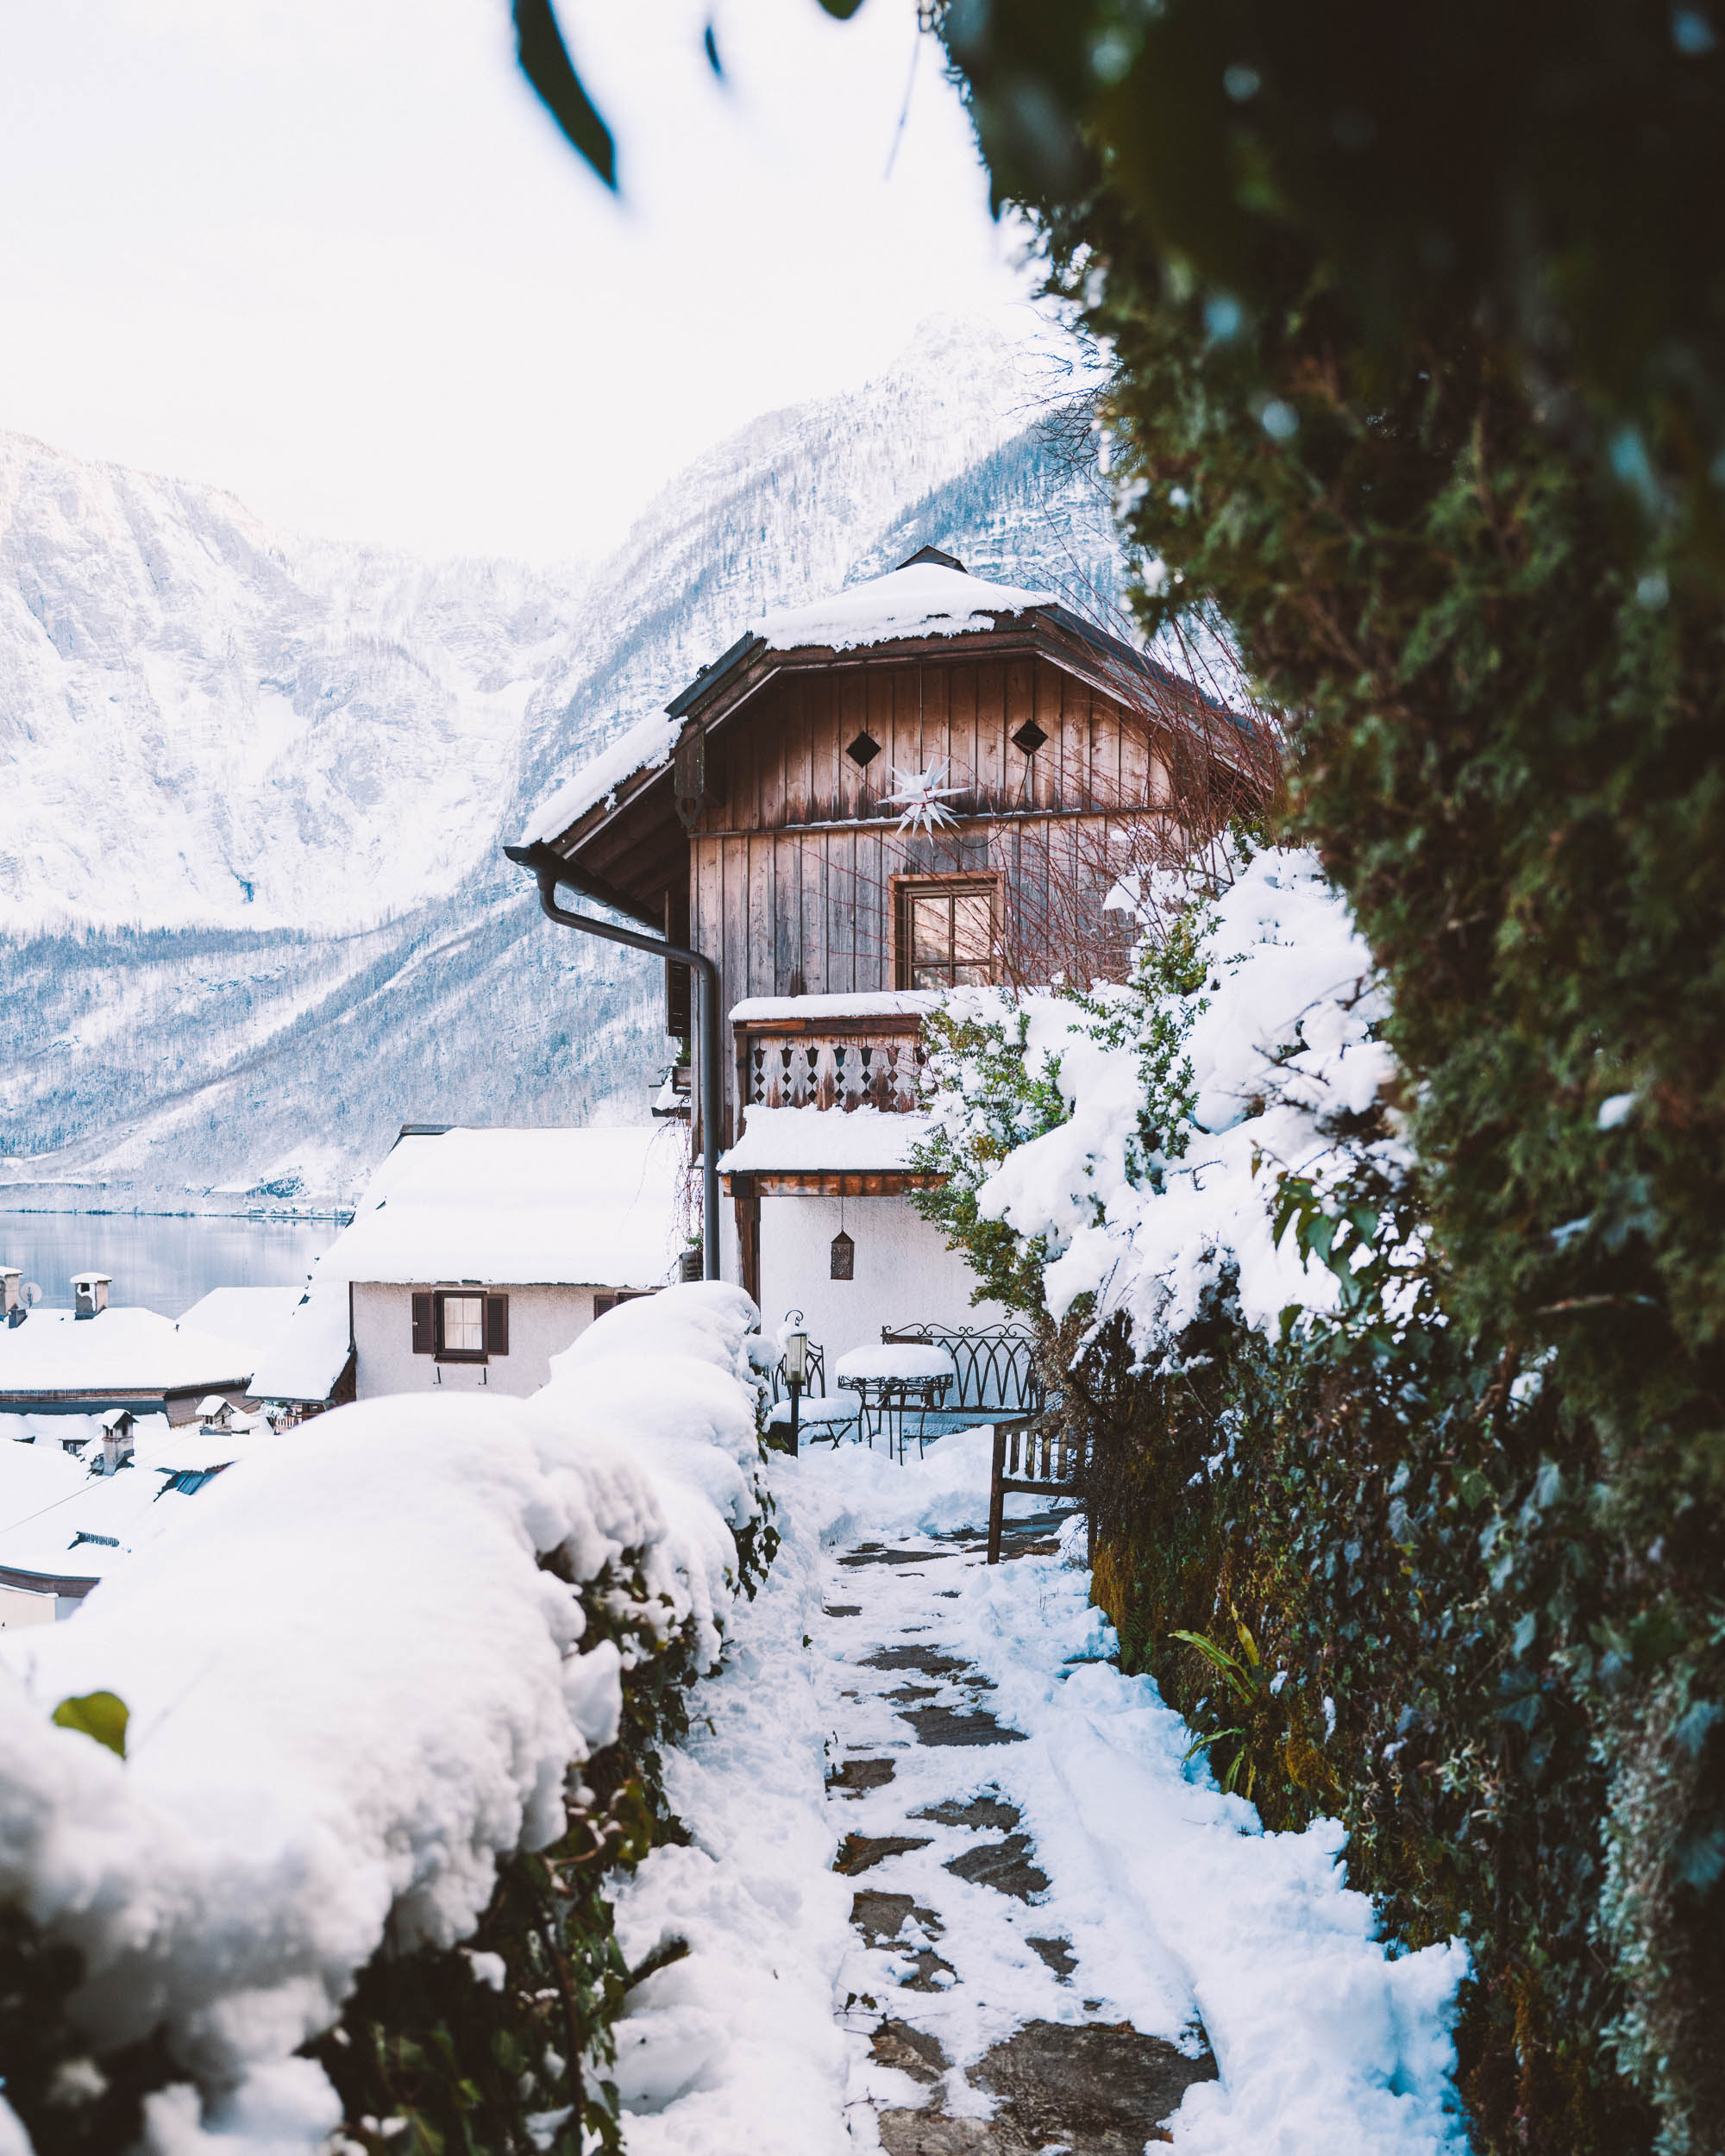 Snow covered homes and paths in Hallstatt Austria in winter